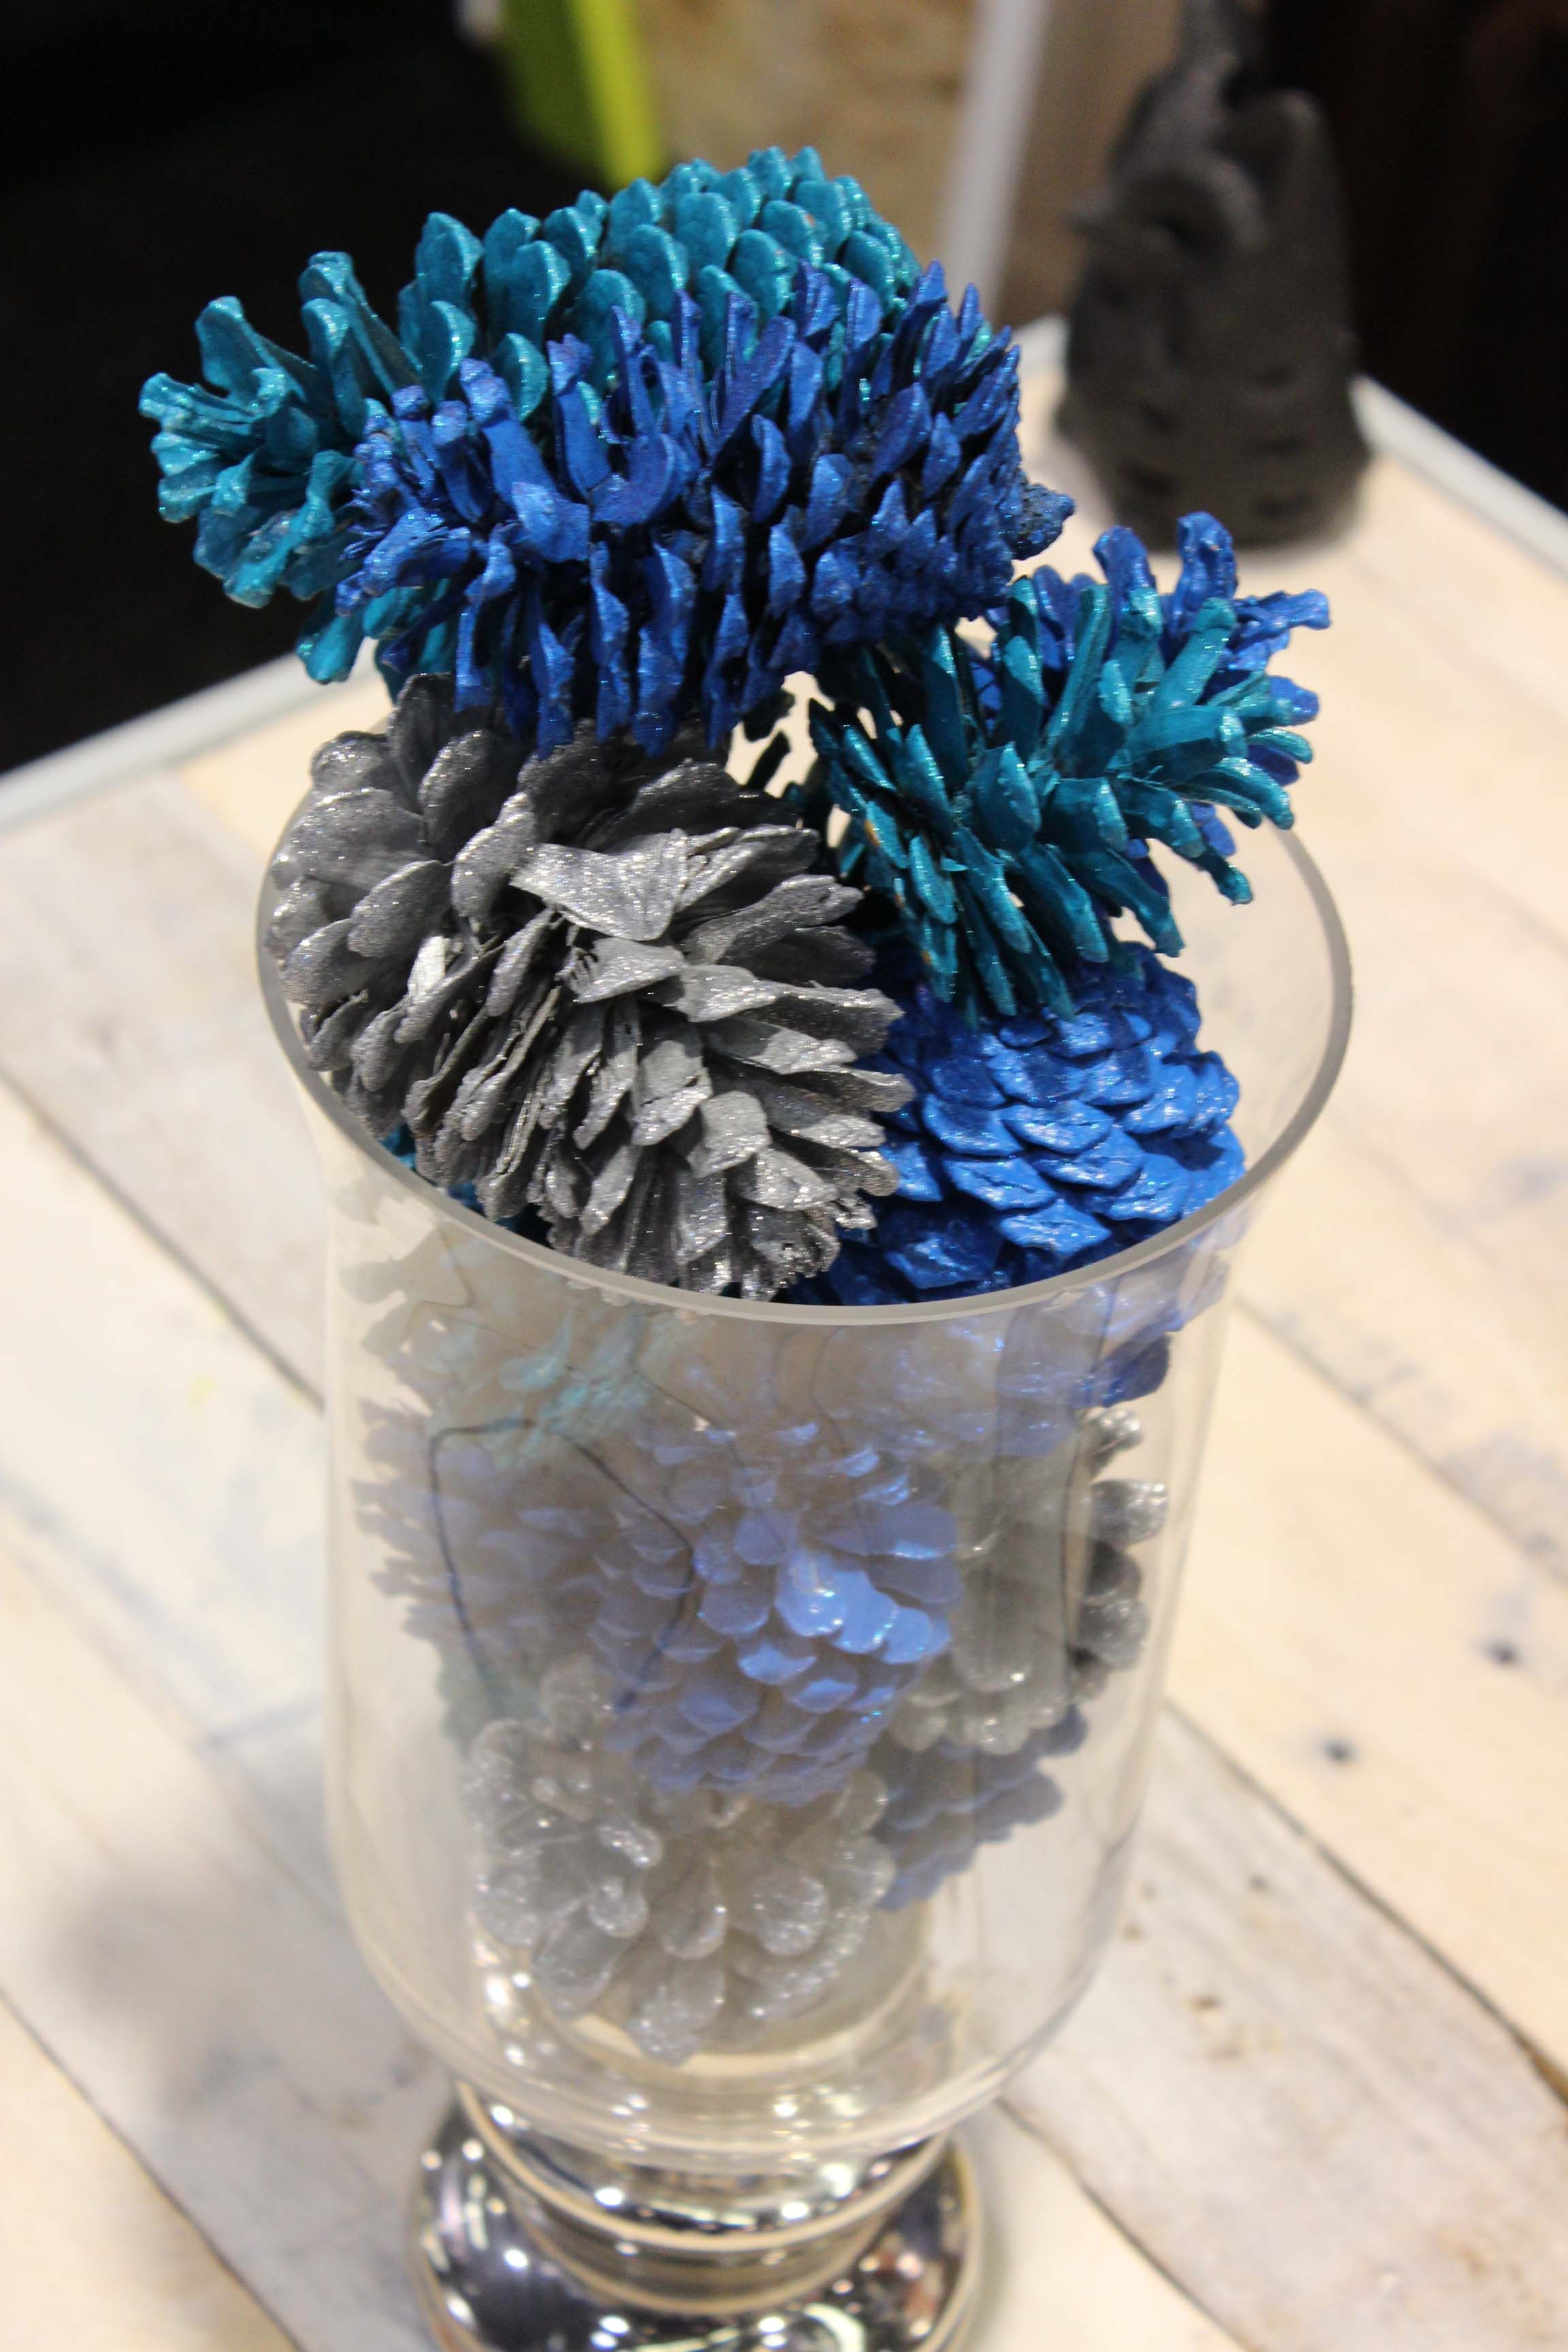 Water Beads Vase Of Blue Vase Filler Photos Best 15 Cheap and Easy Diy Vase Filler Ideas within Blue Vase Filler Pictures Rust Oleum Spray Painted Glitter Pine Cones as A Vase Filler Of